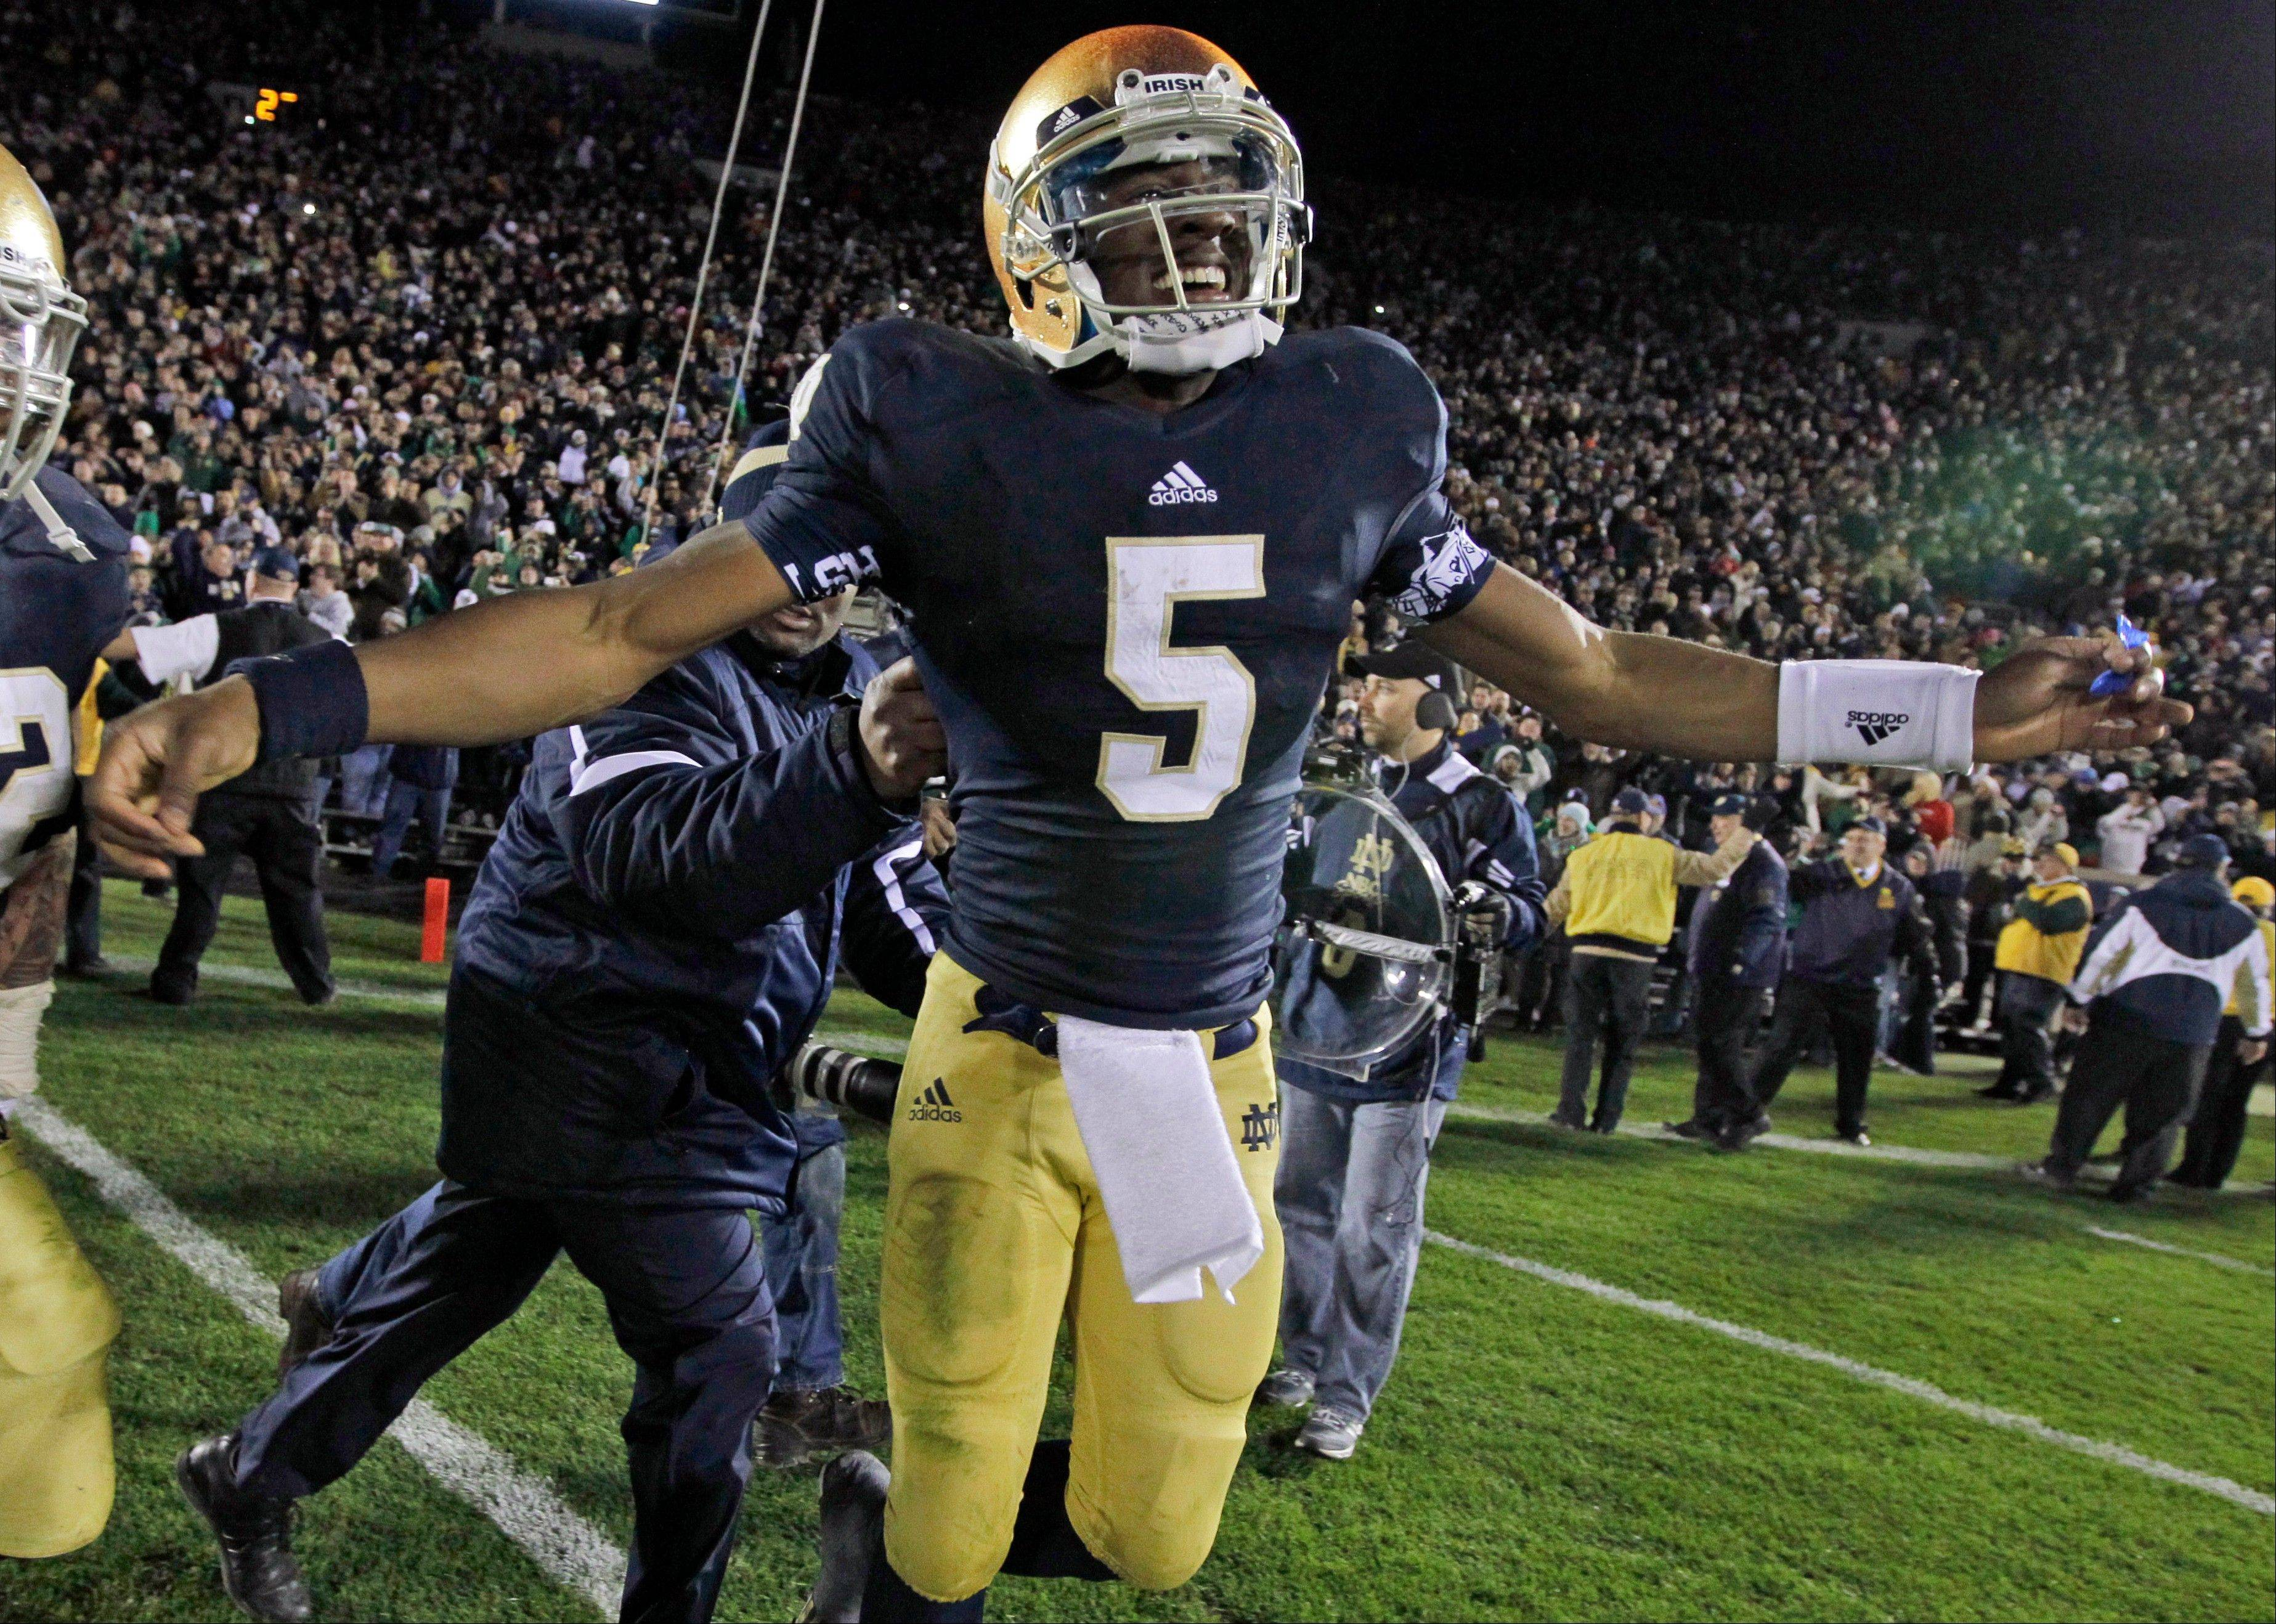 Notre Dame quarterback Everett Golson celebrates Saturday after scoring the winning touchdown in the the third overtime period against Pittsburgh in South Bend. The Irish take on 2-7 Boston College Saturday.